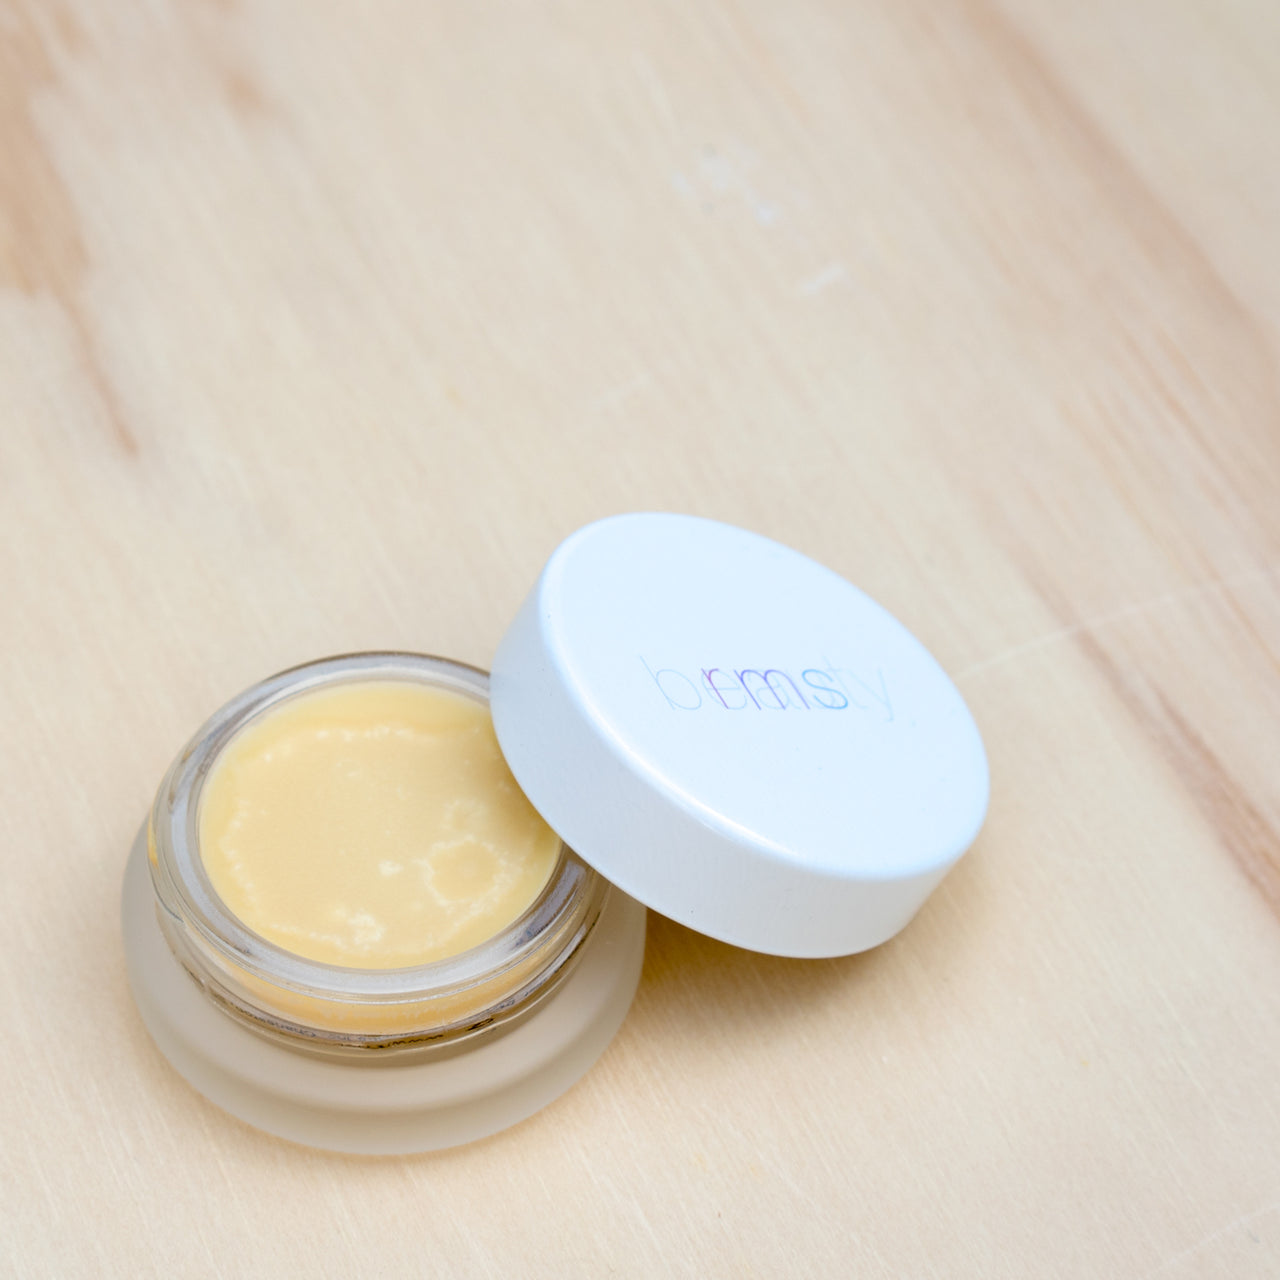 RMS Beauty Lip + Skin Balm